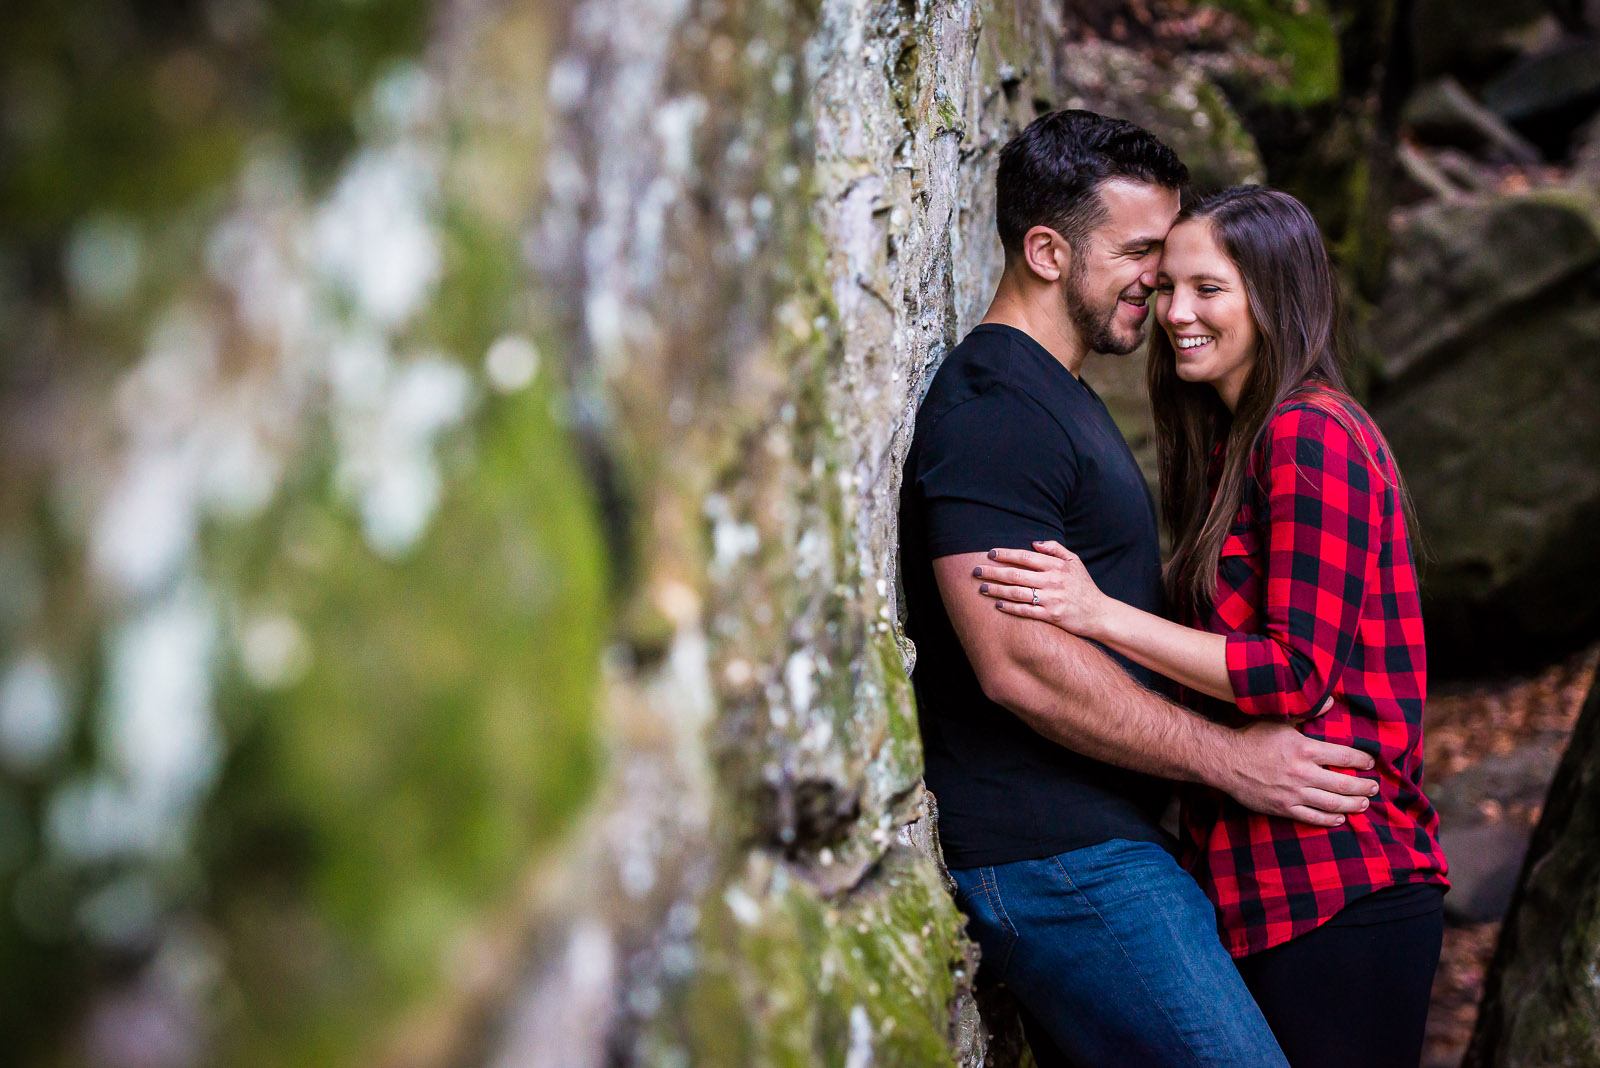 Eric_and_Christy_Photography_Blog_Stephanie_Nick_Engagement-11